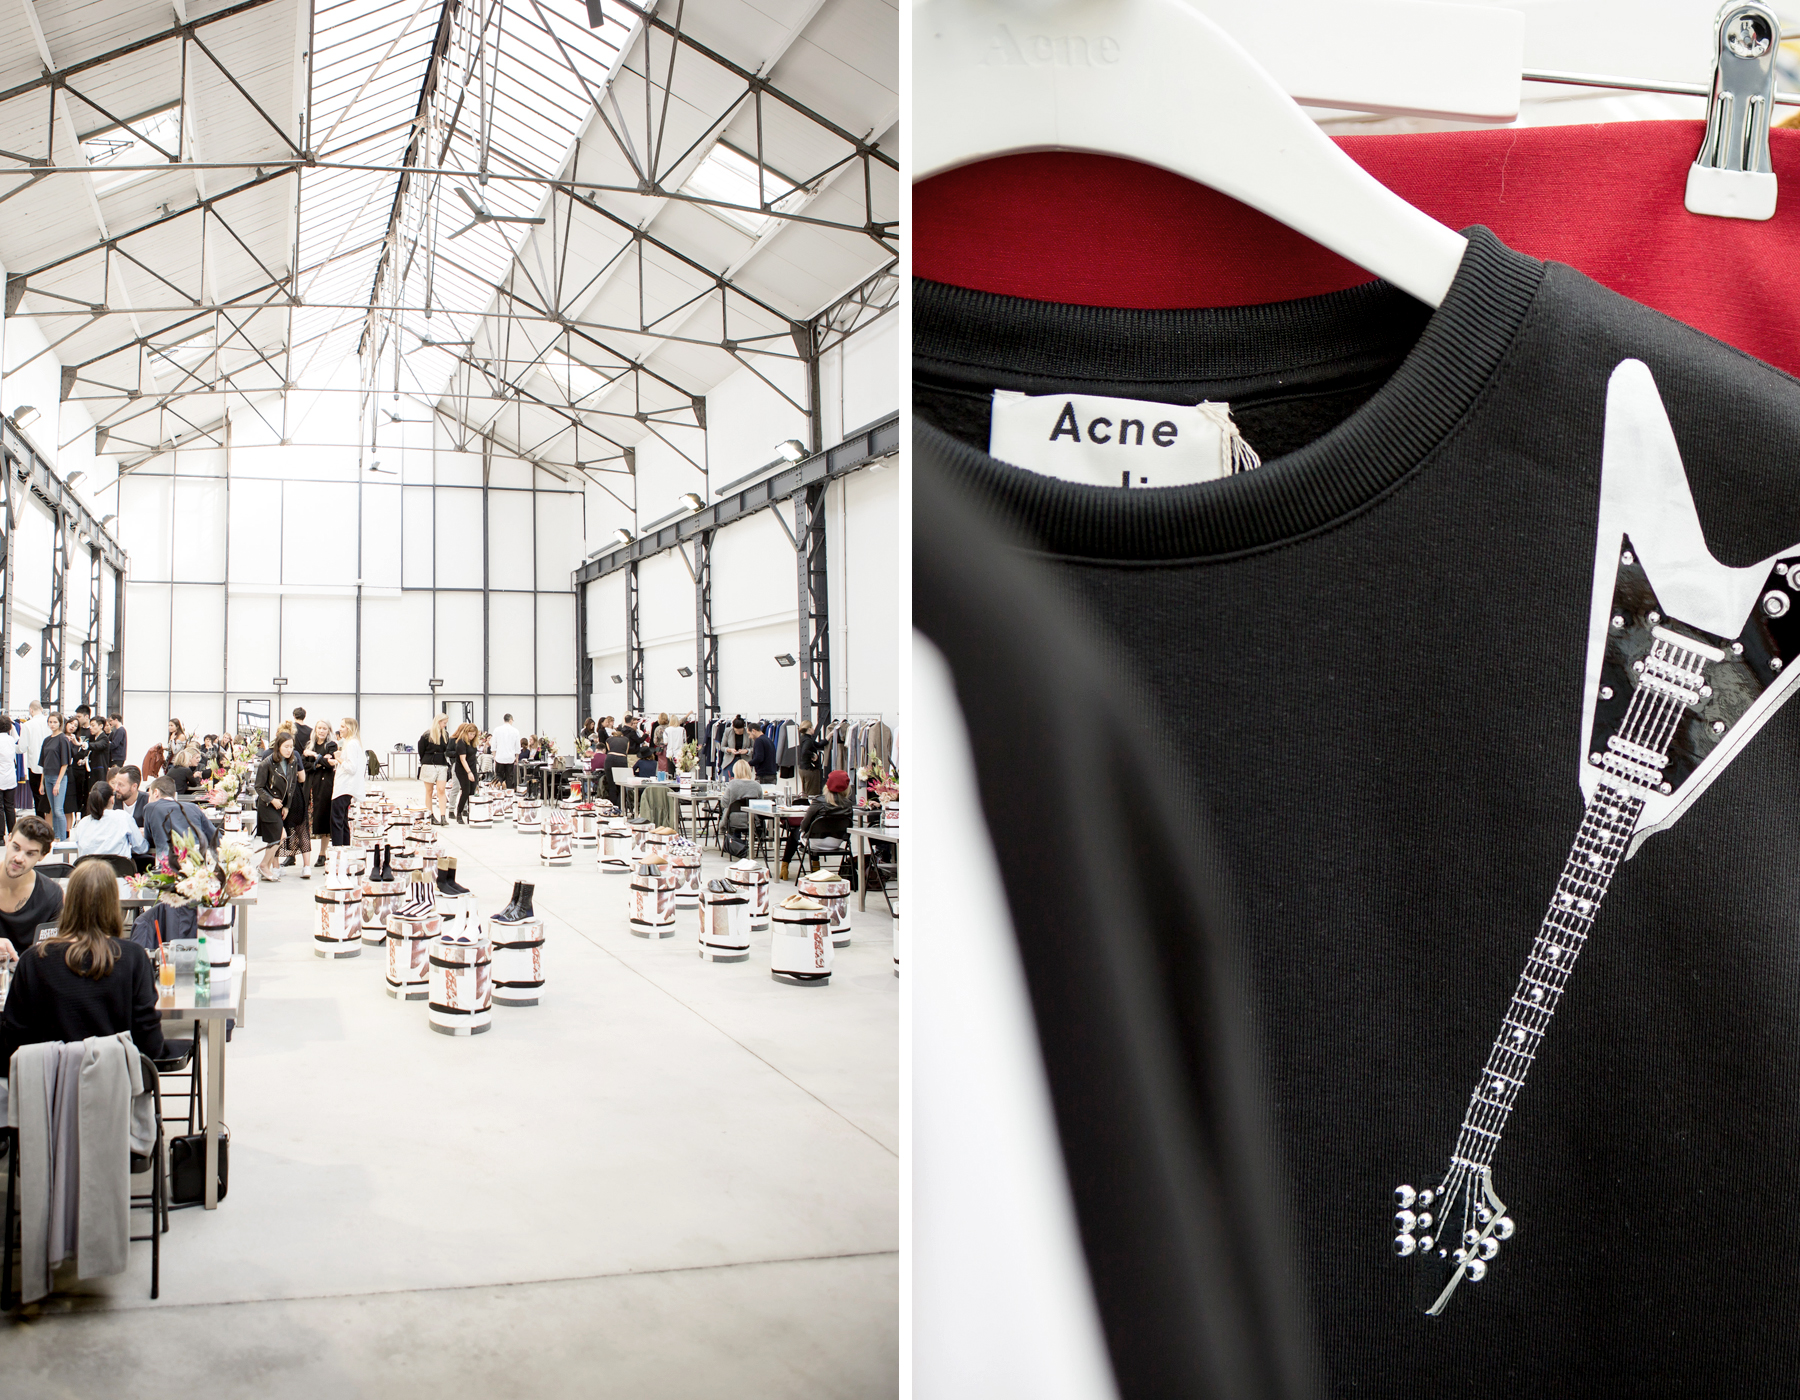 acne studios paris showroom resee ss2016 pfw fashionweek scandinavian design minimal chic ricarda schernus fashionblogger cats & dogs blog 6